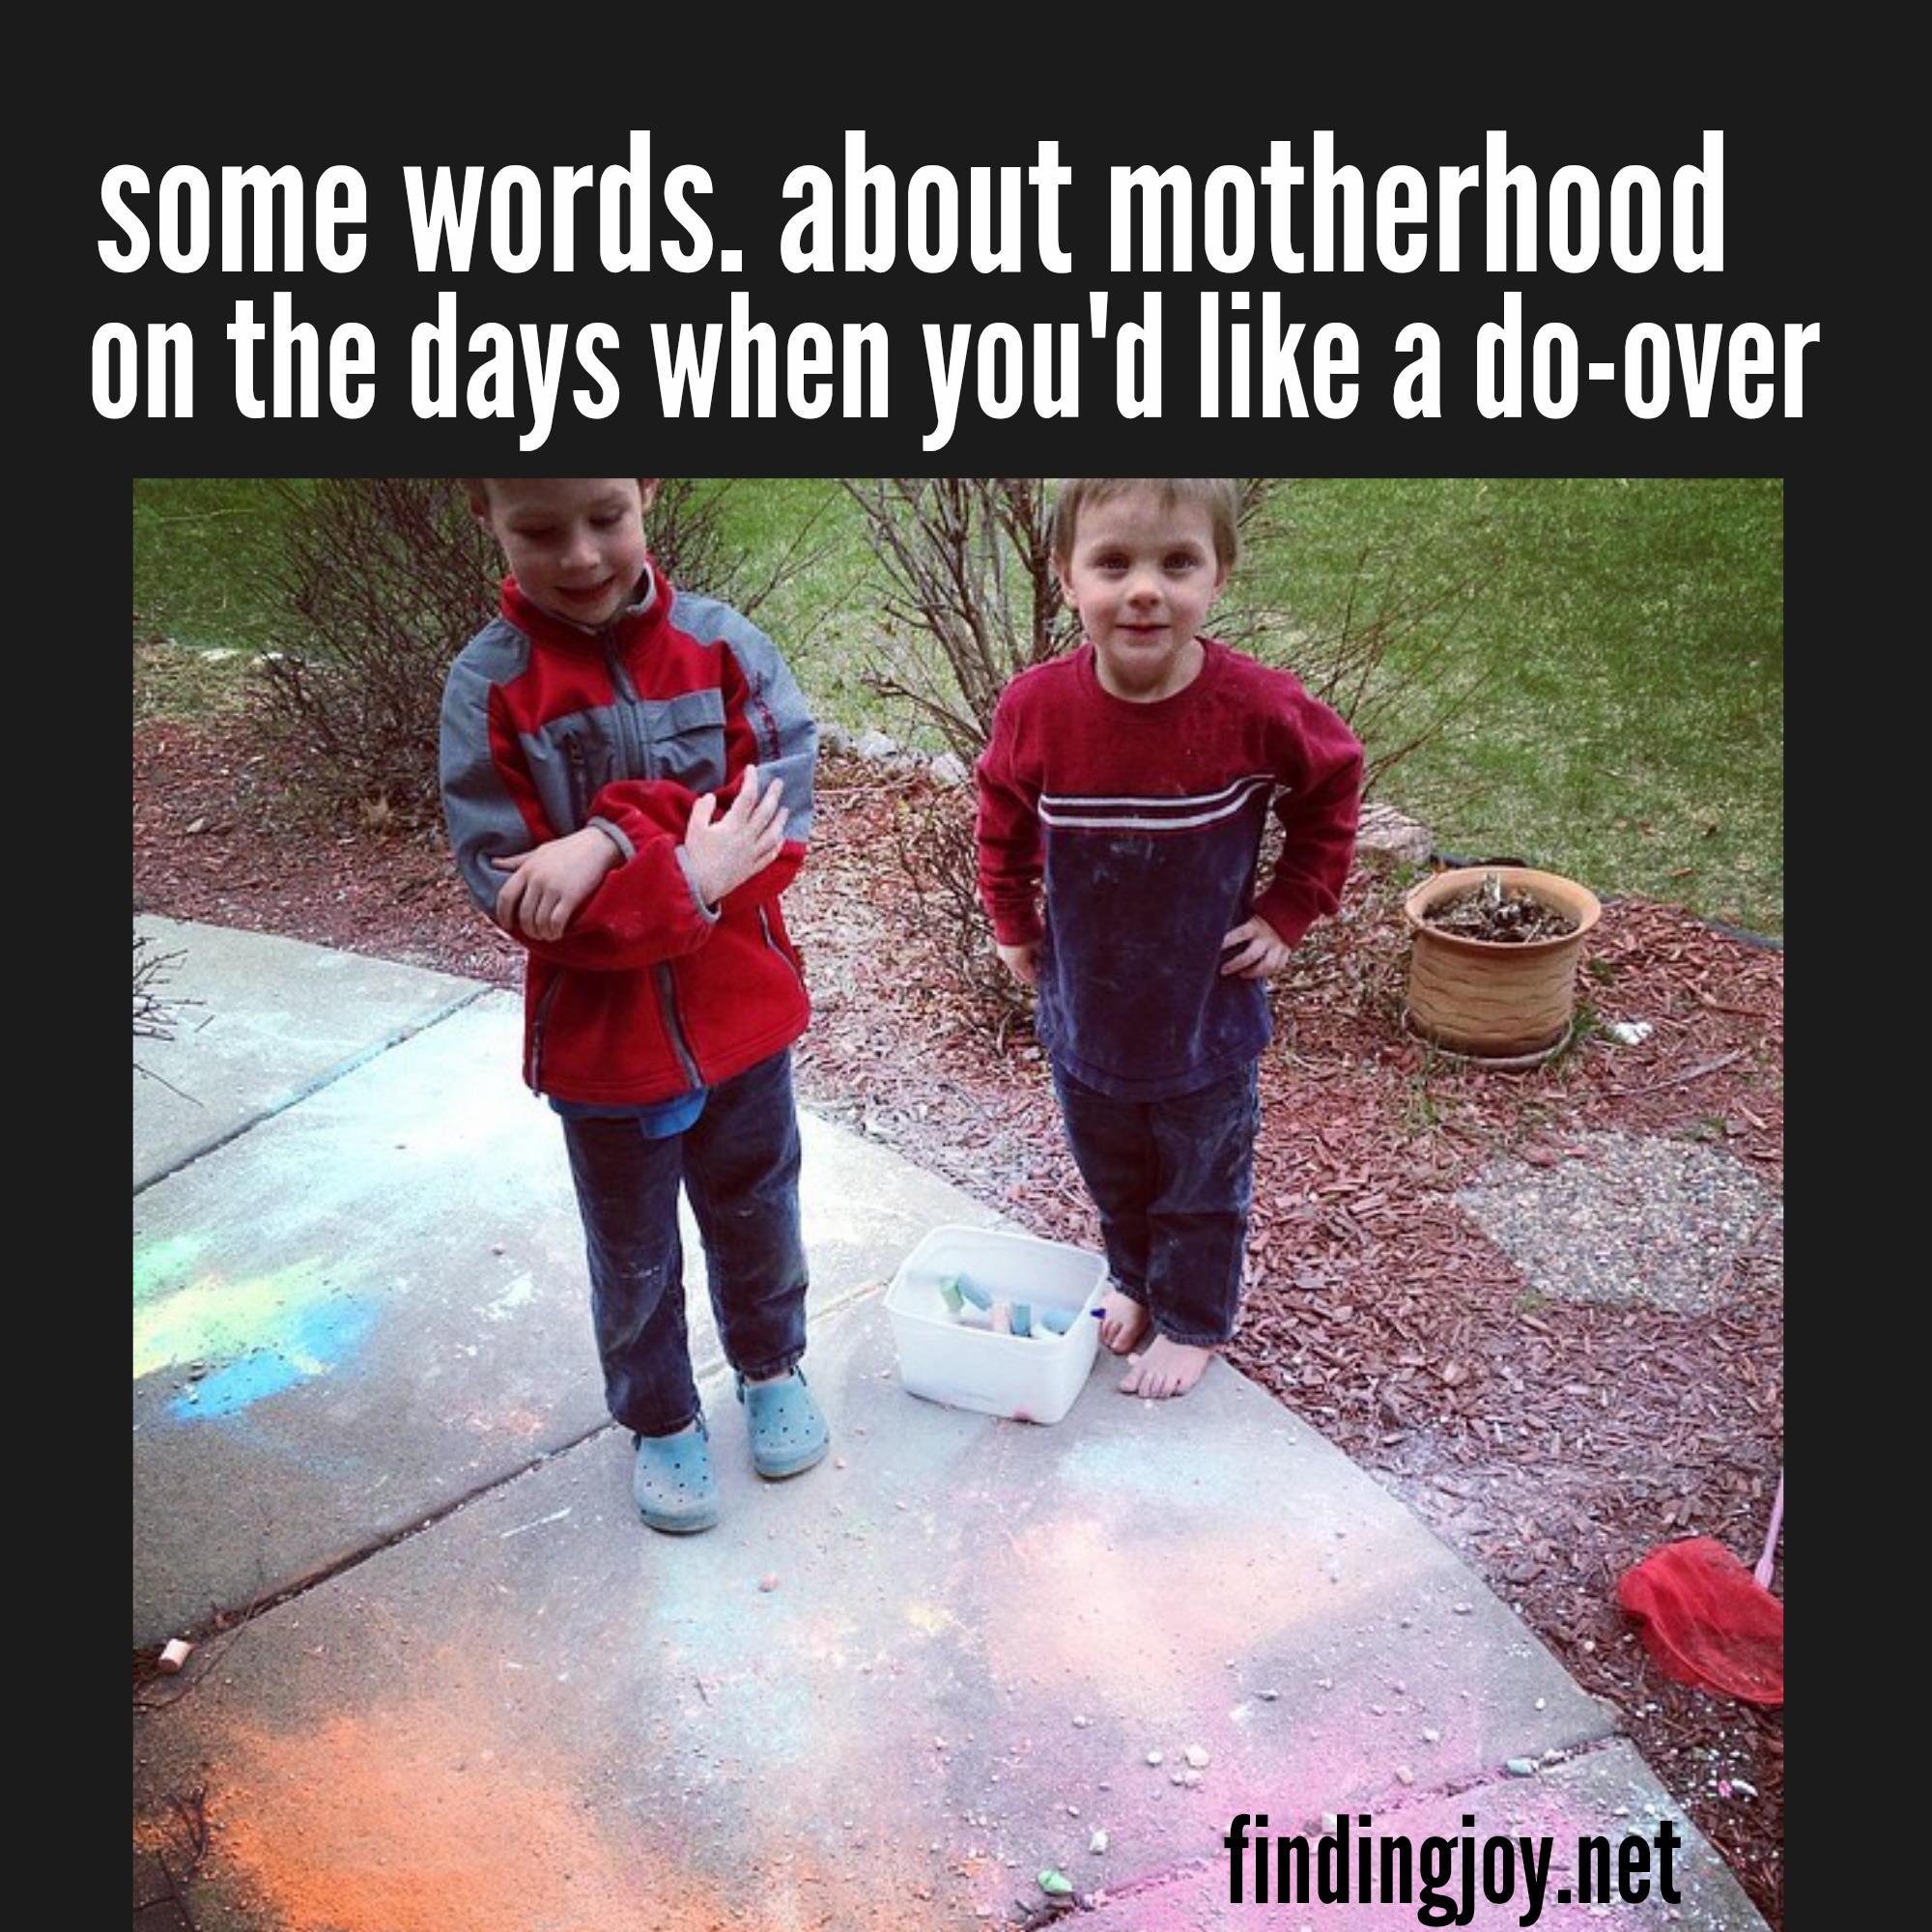 motherhooddo-over.jpg